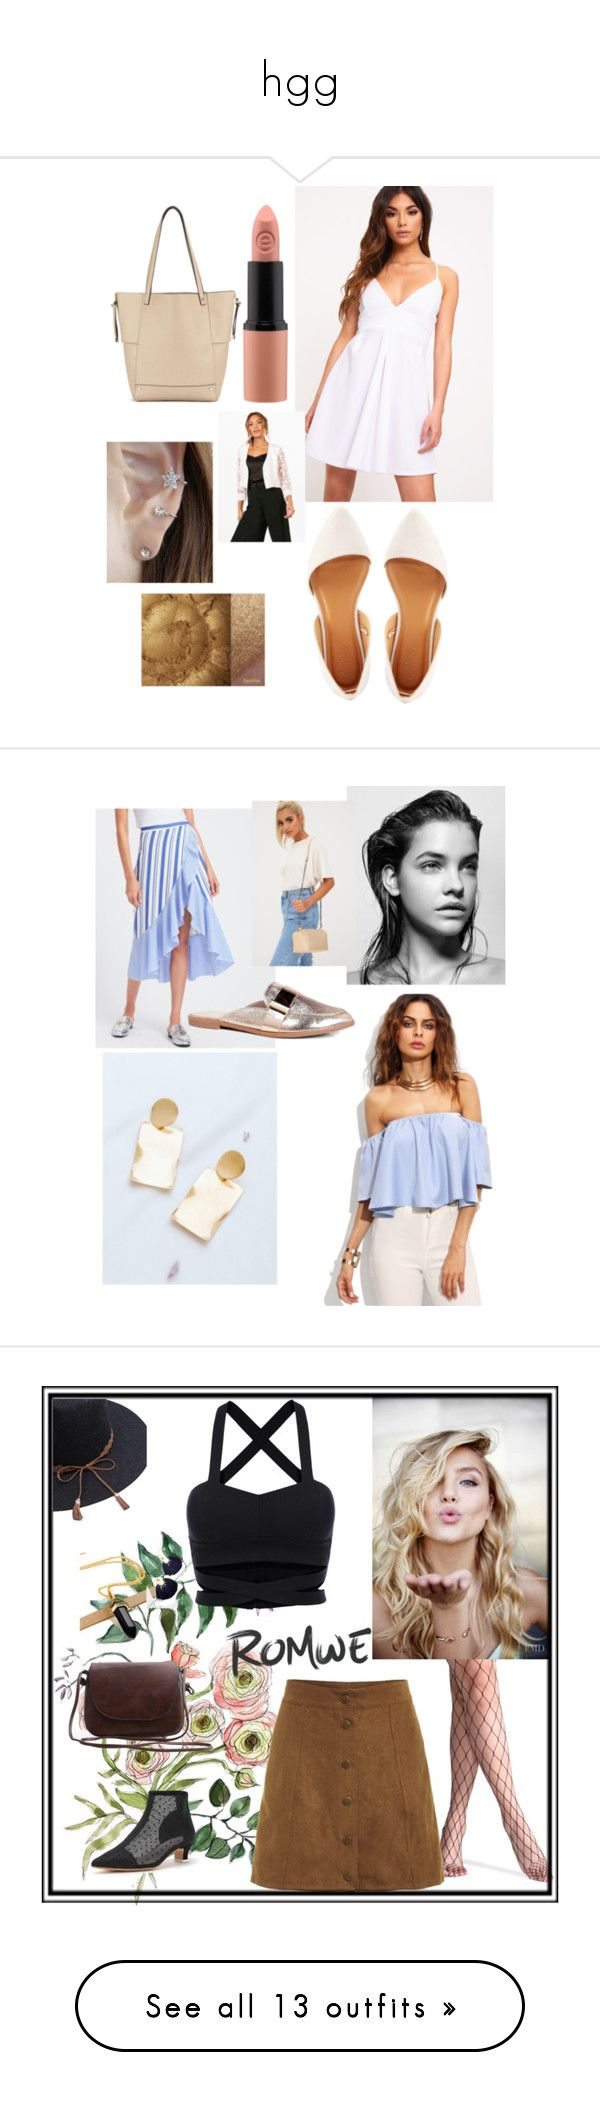 """hgg"" by milausah ❤ liked on Polyvore featuring Miss Selfridge, Charlotte Russe, Boohoo, Forever 21, gift, sale, onlineshoping, Celestine, Maybelline and NYX"